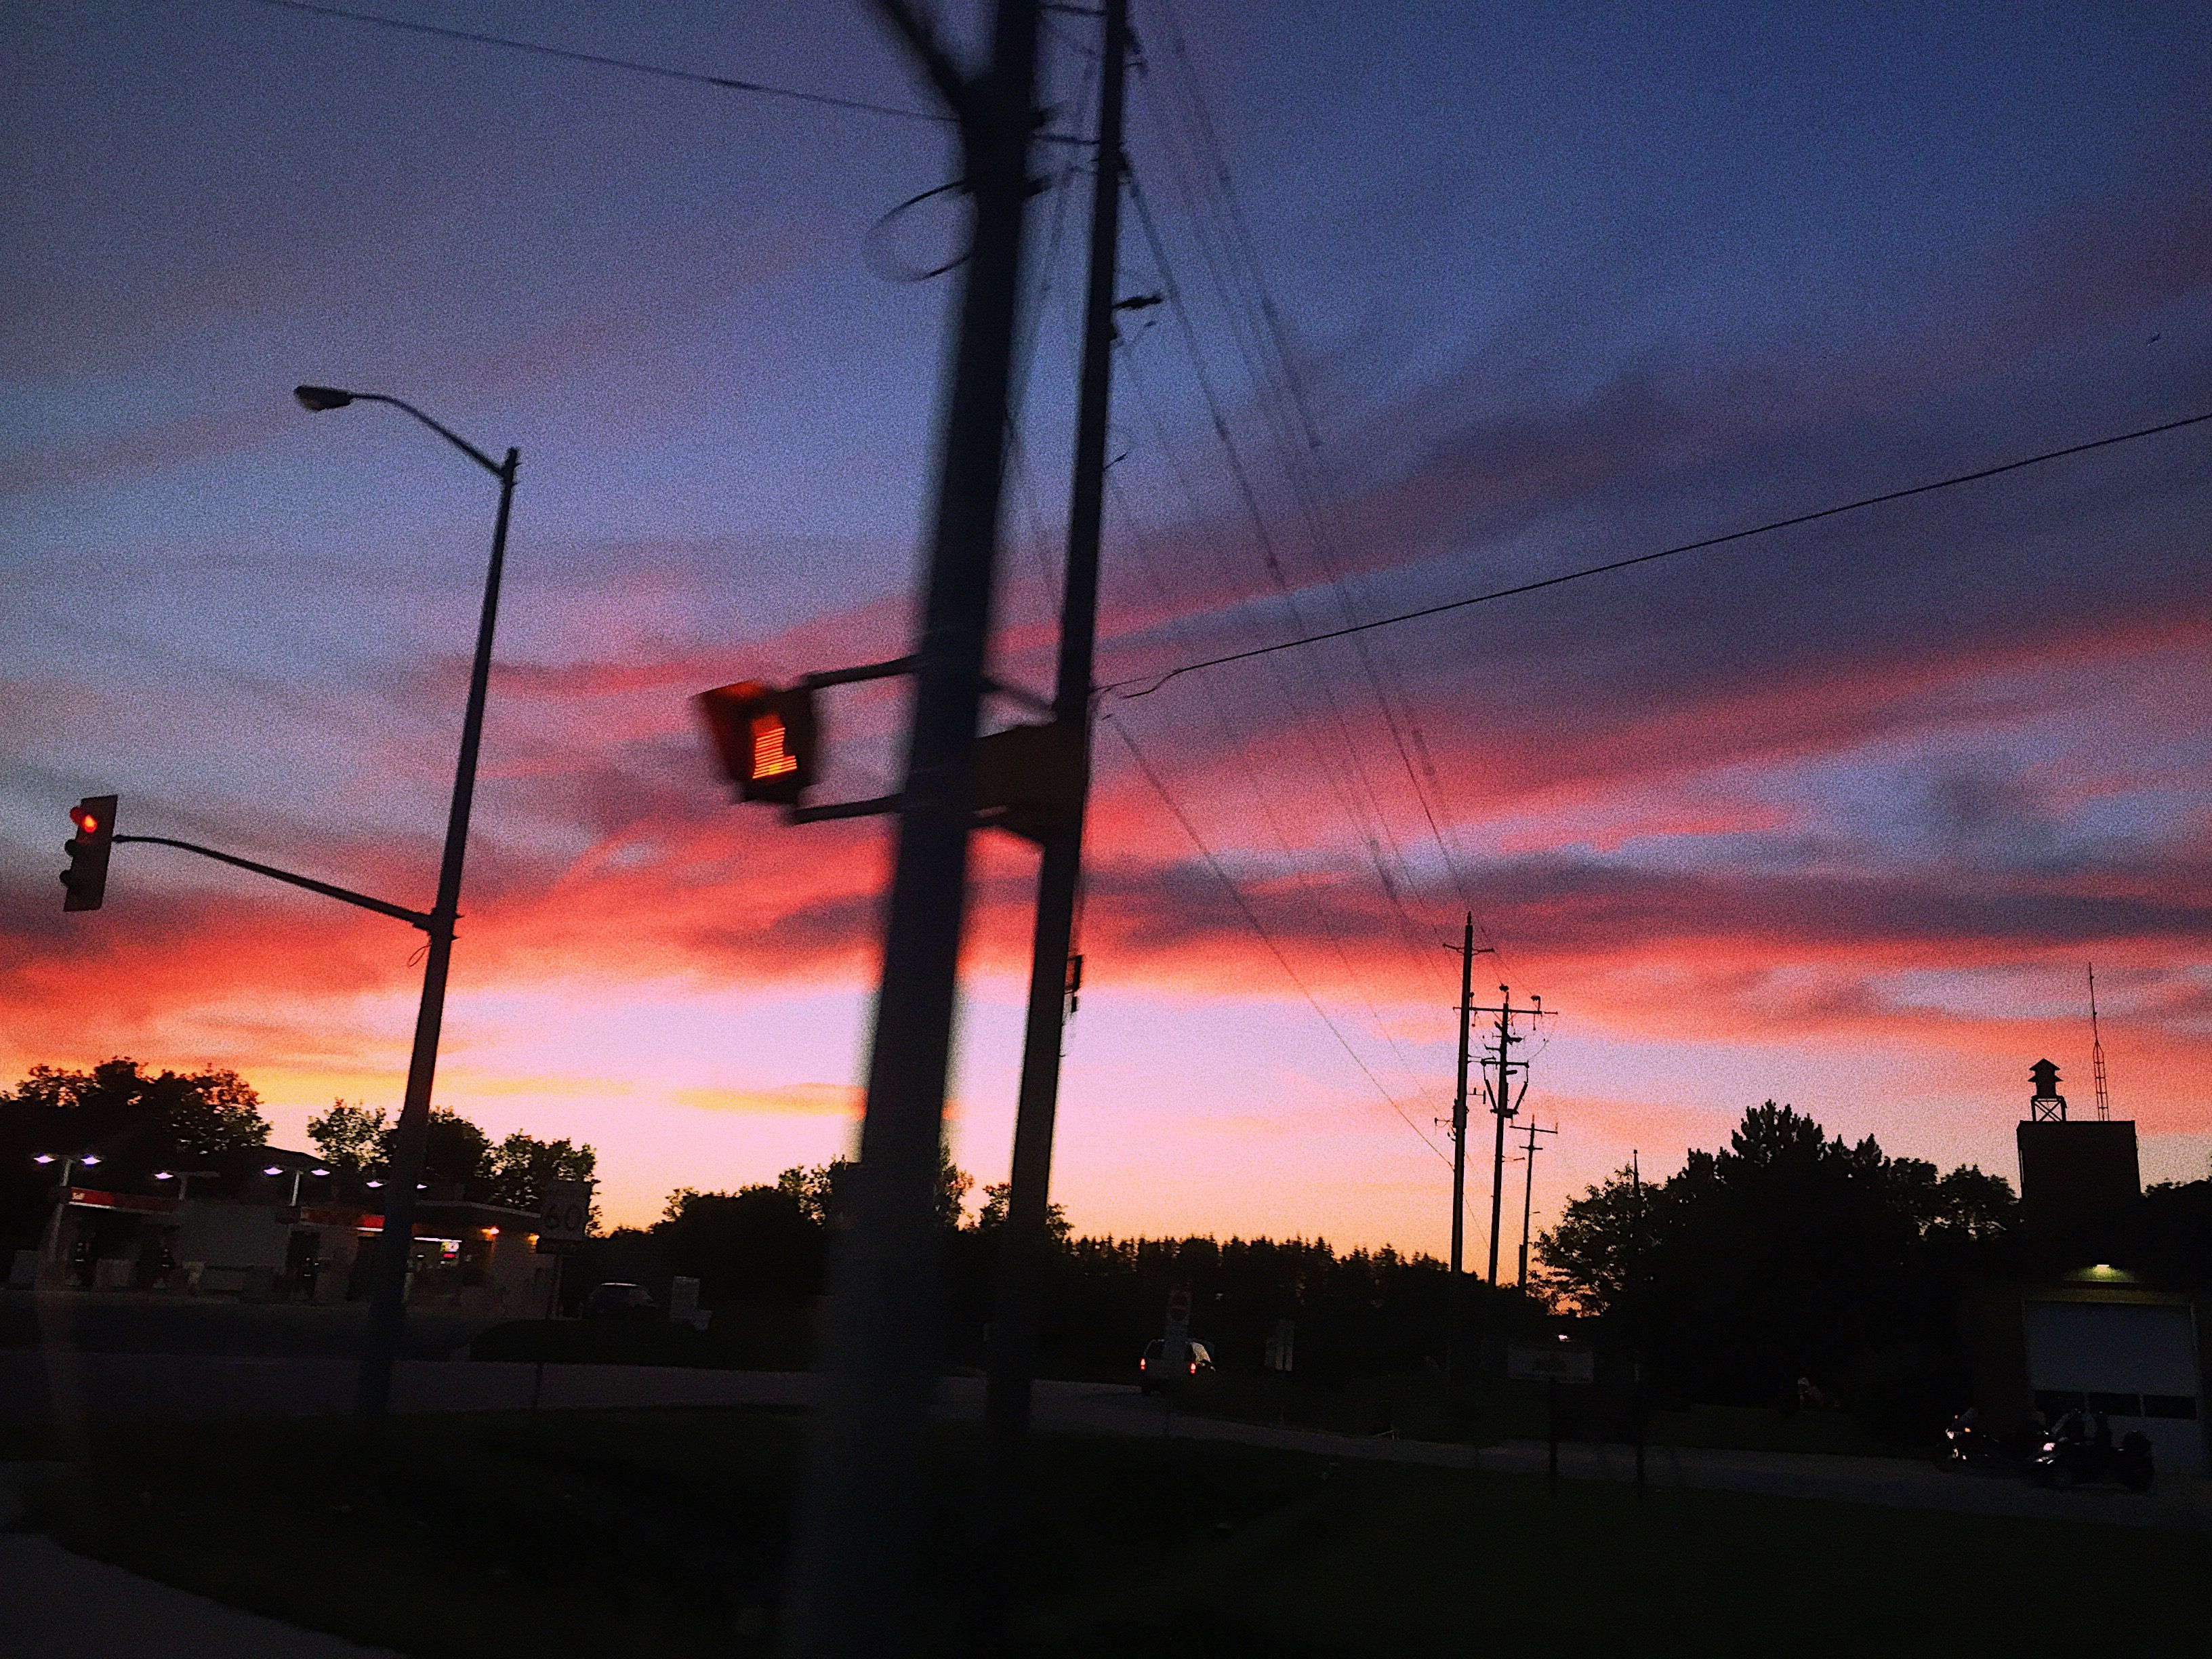 Pinterest Gaelynhoran Sunset Photography Aesthetic Stop Light Pretty Views Colorful Sky Aesthetic Pretty Sky Sky Photography